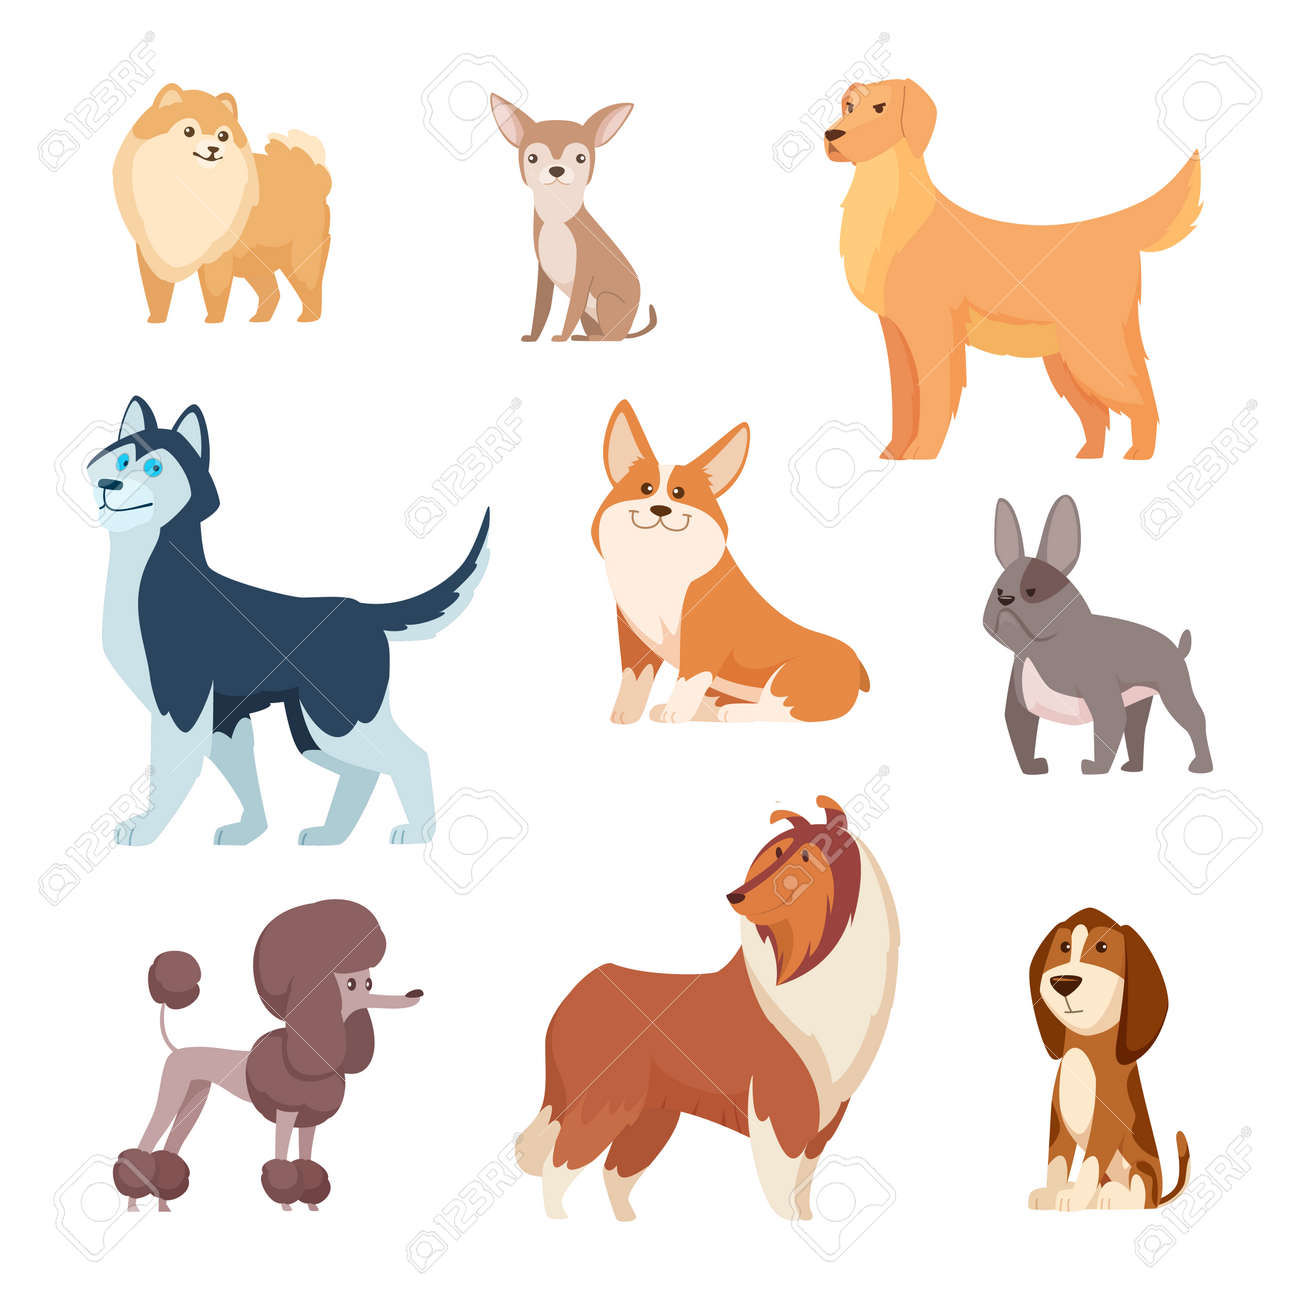 Dogs breeds. Funny true and faithful animals playing in various poses cartoon puffy puppy poodle bulldog dachshund exact vector illustrations collection. Pet dog animal, funny puppy cartoon - 166824062